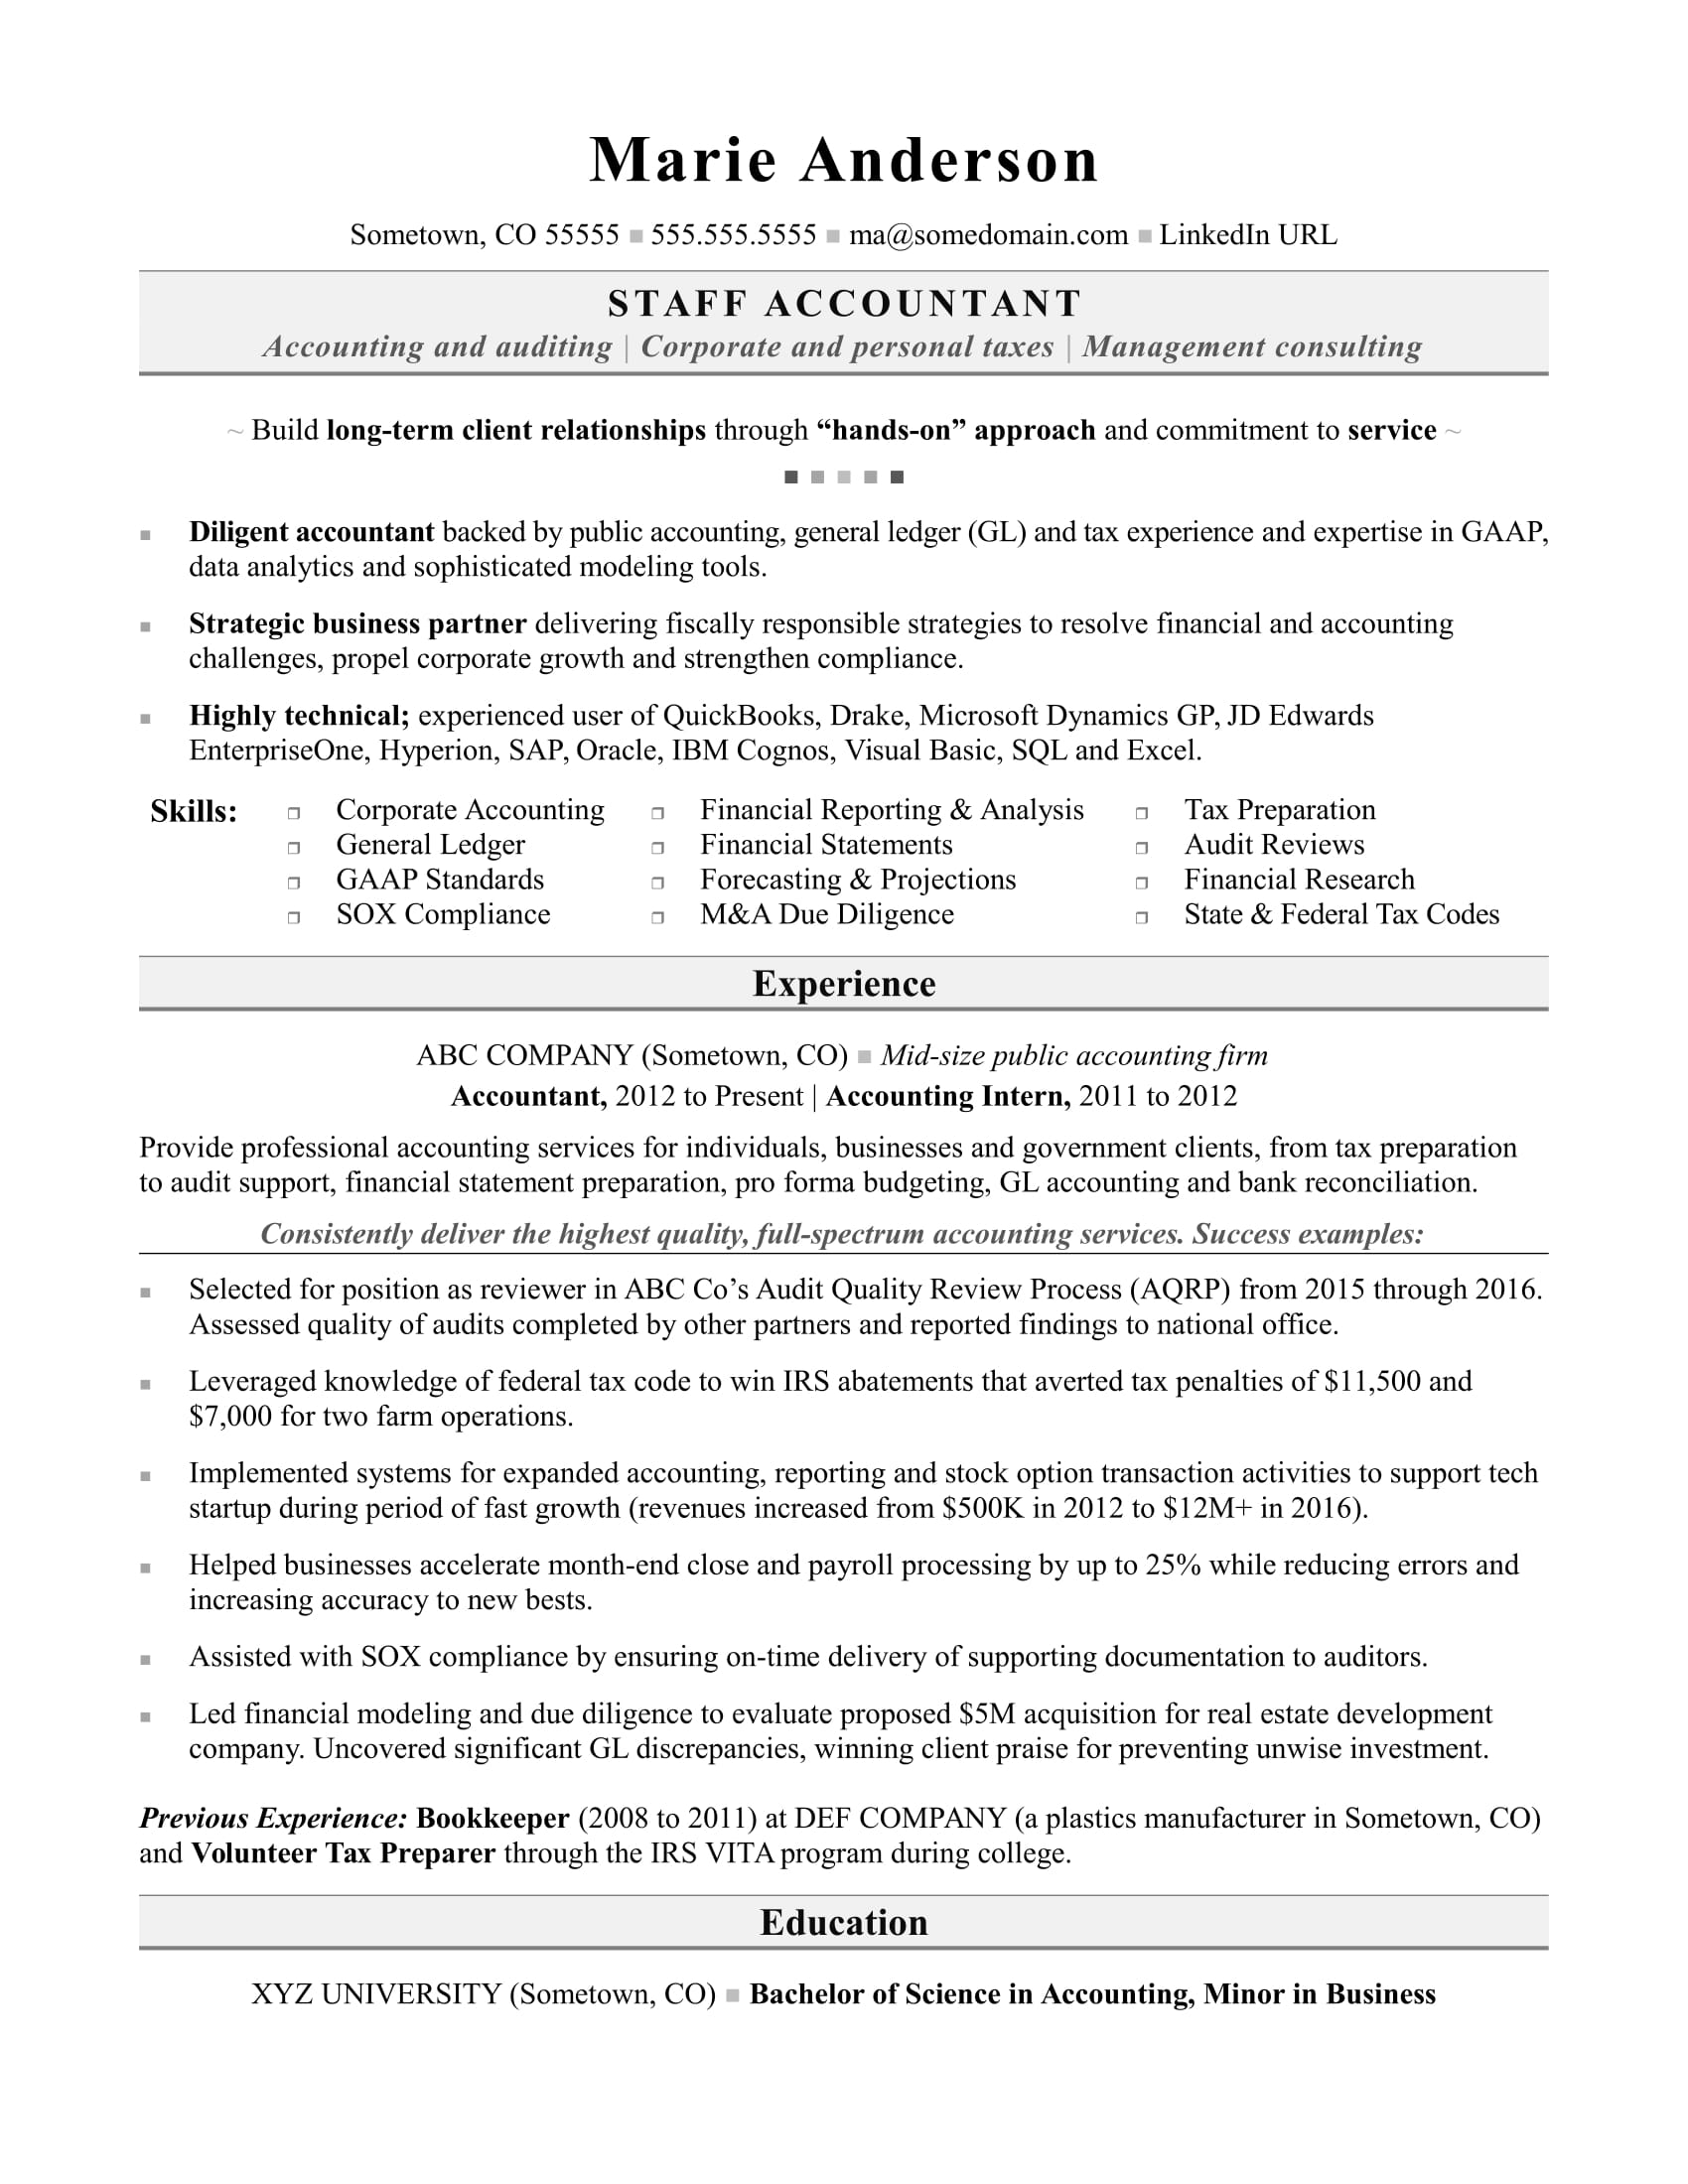 Exceptional Accounting Resume Sample Pertaining To Resume For Accountant